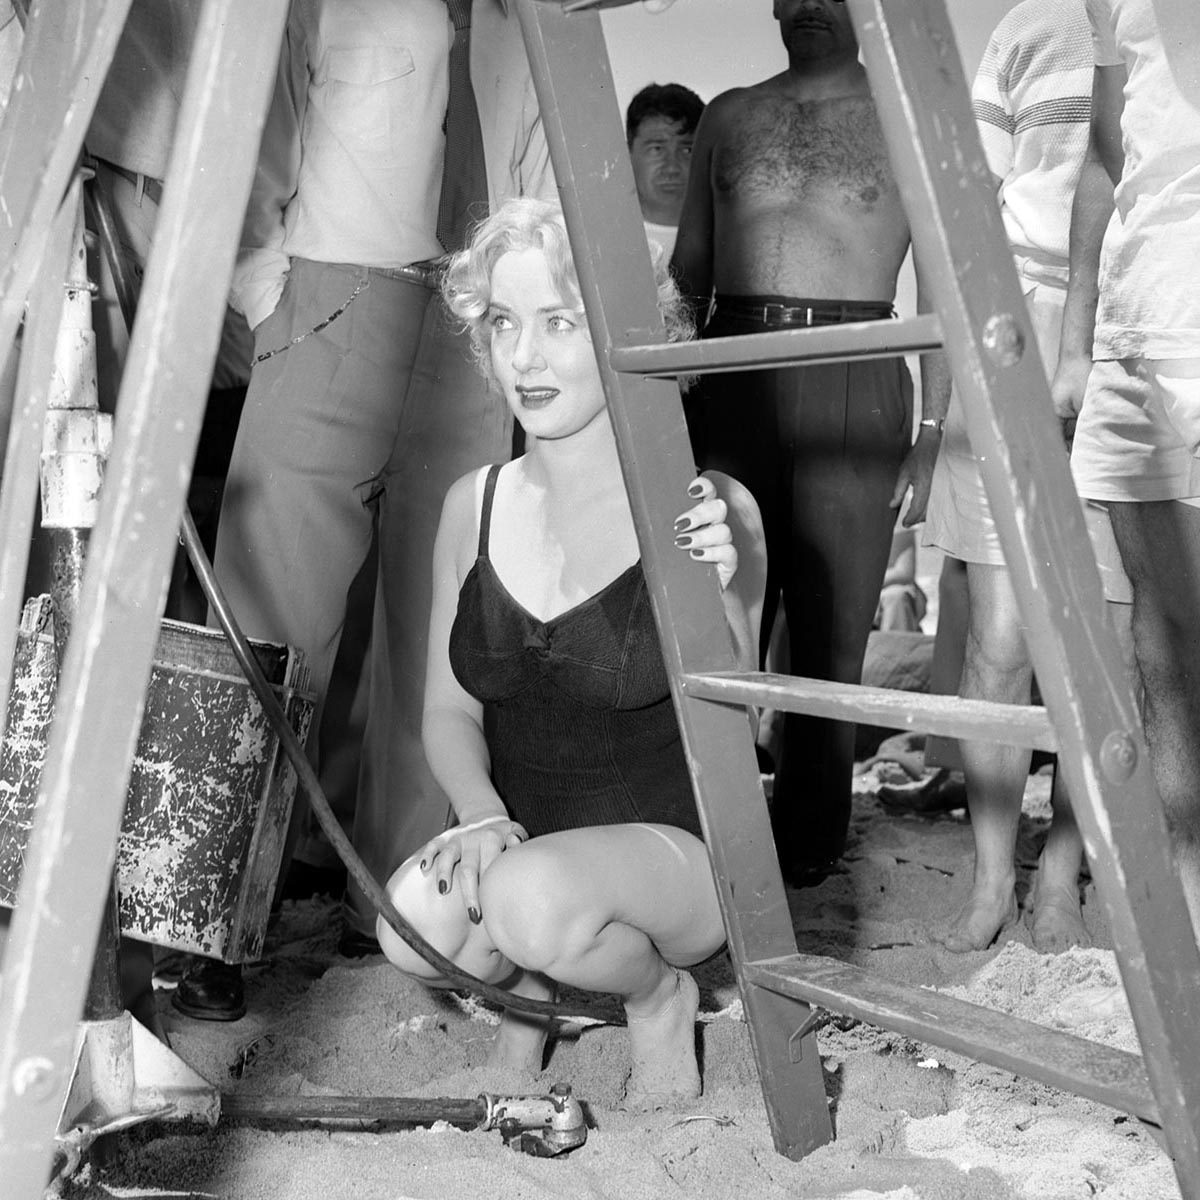 Legs Audrey Totter nudes (31 photos) Paparazzi, Twitter, braless